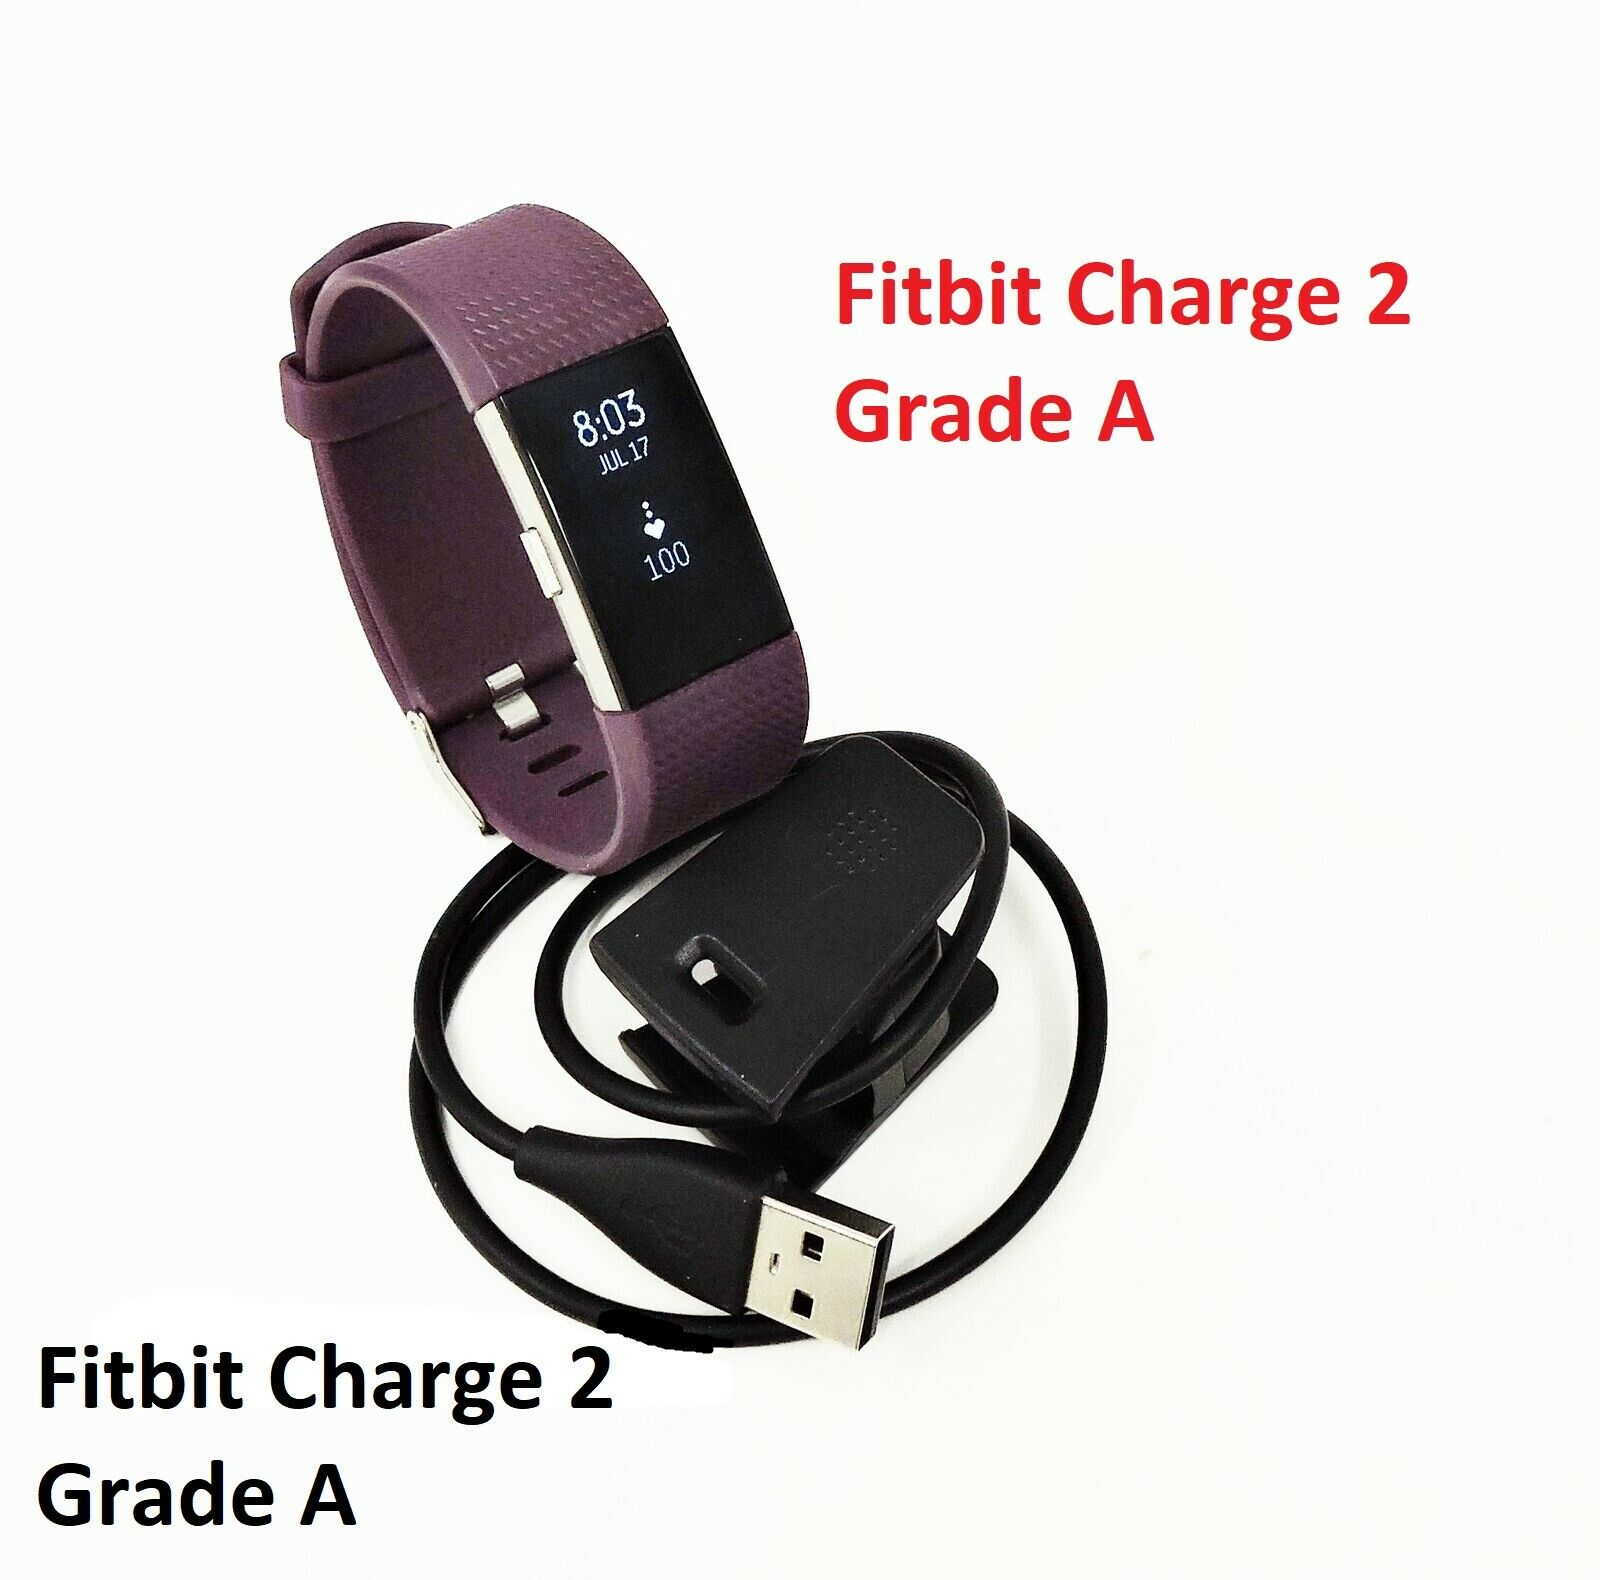 Fitbit Charge 2 Heart Rate Fitness Sleep Tracker Plum Large Grade A charge Featured fitbit fitness grade heart large plum rate sleep tracker